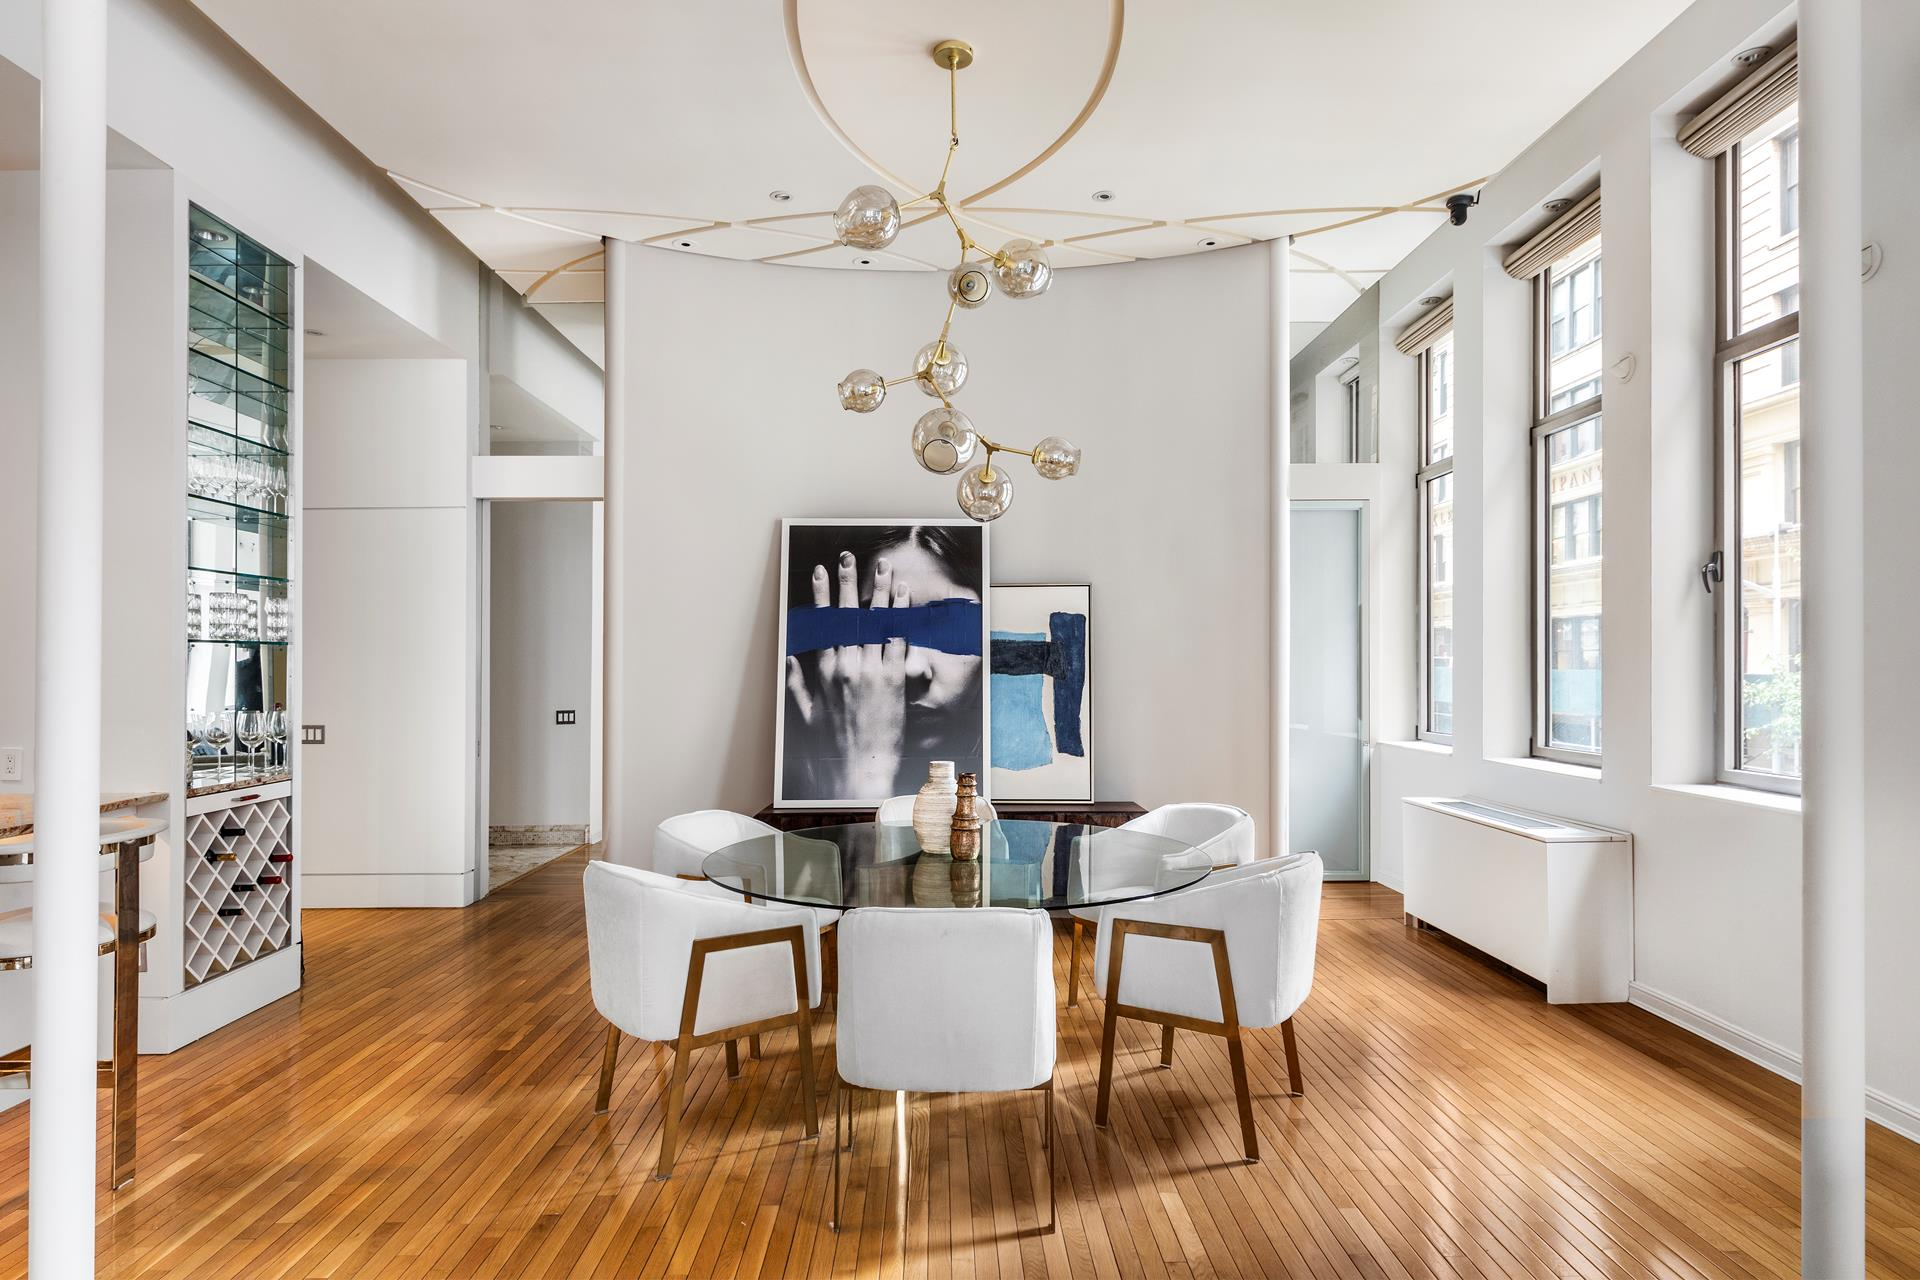 This spectacular 3-bedroom loft (currently configured as a two beds) is located in the Chelsea Mercantile, one of the most desirable prewar condominiums in the neighborhood.At 2,200 square feet this corner loft with over 13' ceilings and tall oversized windows, Apartment 3I is truly a unique offering of prewar elegance completed with modern design. A gracious entry gallery leads you into the massive living and dining area that creates a perfect entertaining space. The pristine hardwood floors throughout, generous built-ins, an abundance of natural light, and designer custom lighting for showcasing art are some of the features that make this apartment so special. There are two planting terraces off the north and west facing corners that allow for a unique opportunity to have an outdoor component in this loft home.The chefs-kitchen has Viking appliances, custom cabinetry, stone countertops, and storage for wine. The master suite includes three large closets and a walk-in as well as a five-piece spa bath with double sinks and separate soaking tub and an oversized shower. The split bedroom layout is ideal for privacy and use of space.Built in the early 1900s, The Chelsea Mercantile is a well-established full-service prewar condominium in the heart of Chelsea close to shopping, dining, public transportation, and the highline. Amenities include a beautifully renovated lobby, 24-hour doorman, live-in super, private storage, children's playroom, dry-cleaning services, gym, parking, and a 10,000 sqft planted/furnished roof-deck with unbelievable city views. In addition, there is a Whole Foods located at the ground level making grocery shopping more than convenient.